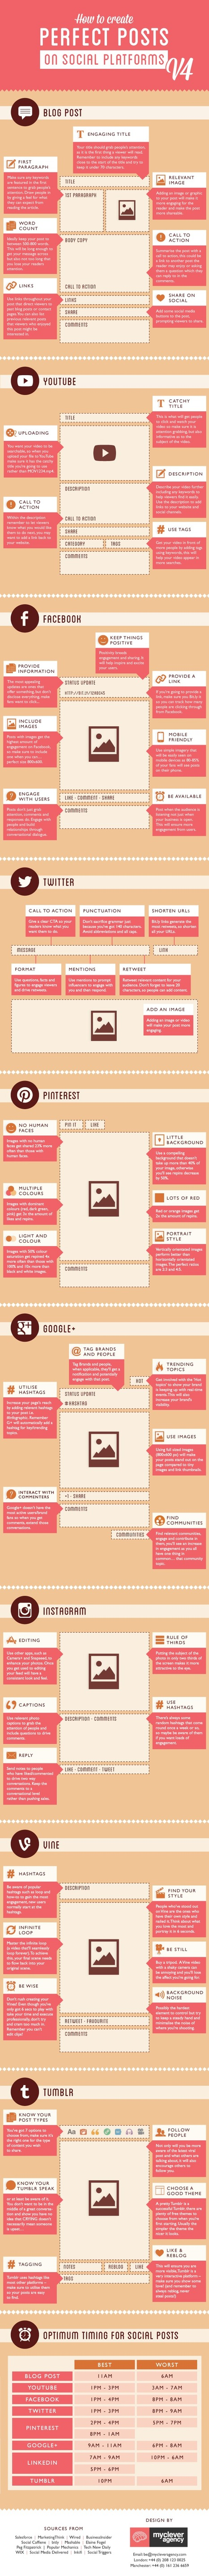 The Art of Creating Perfect Social Media Posts - infographic | EDCI280 | Scoop.it